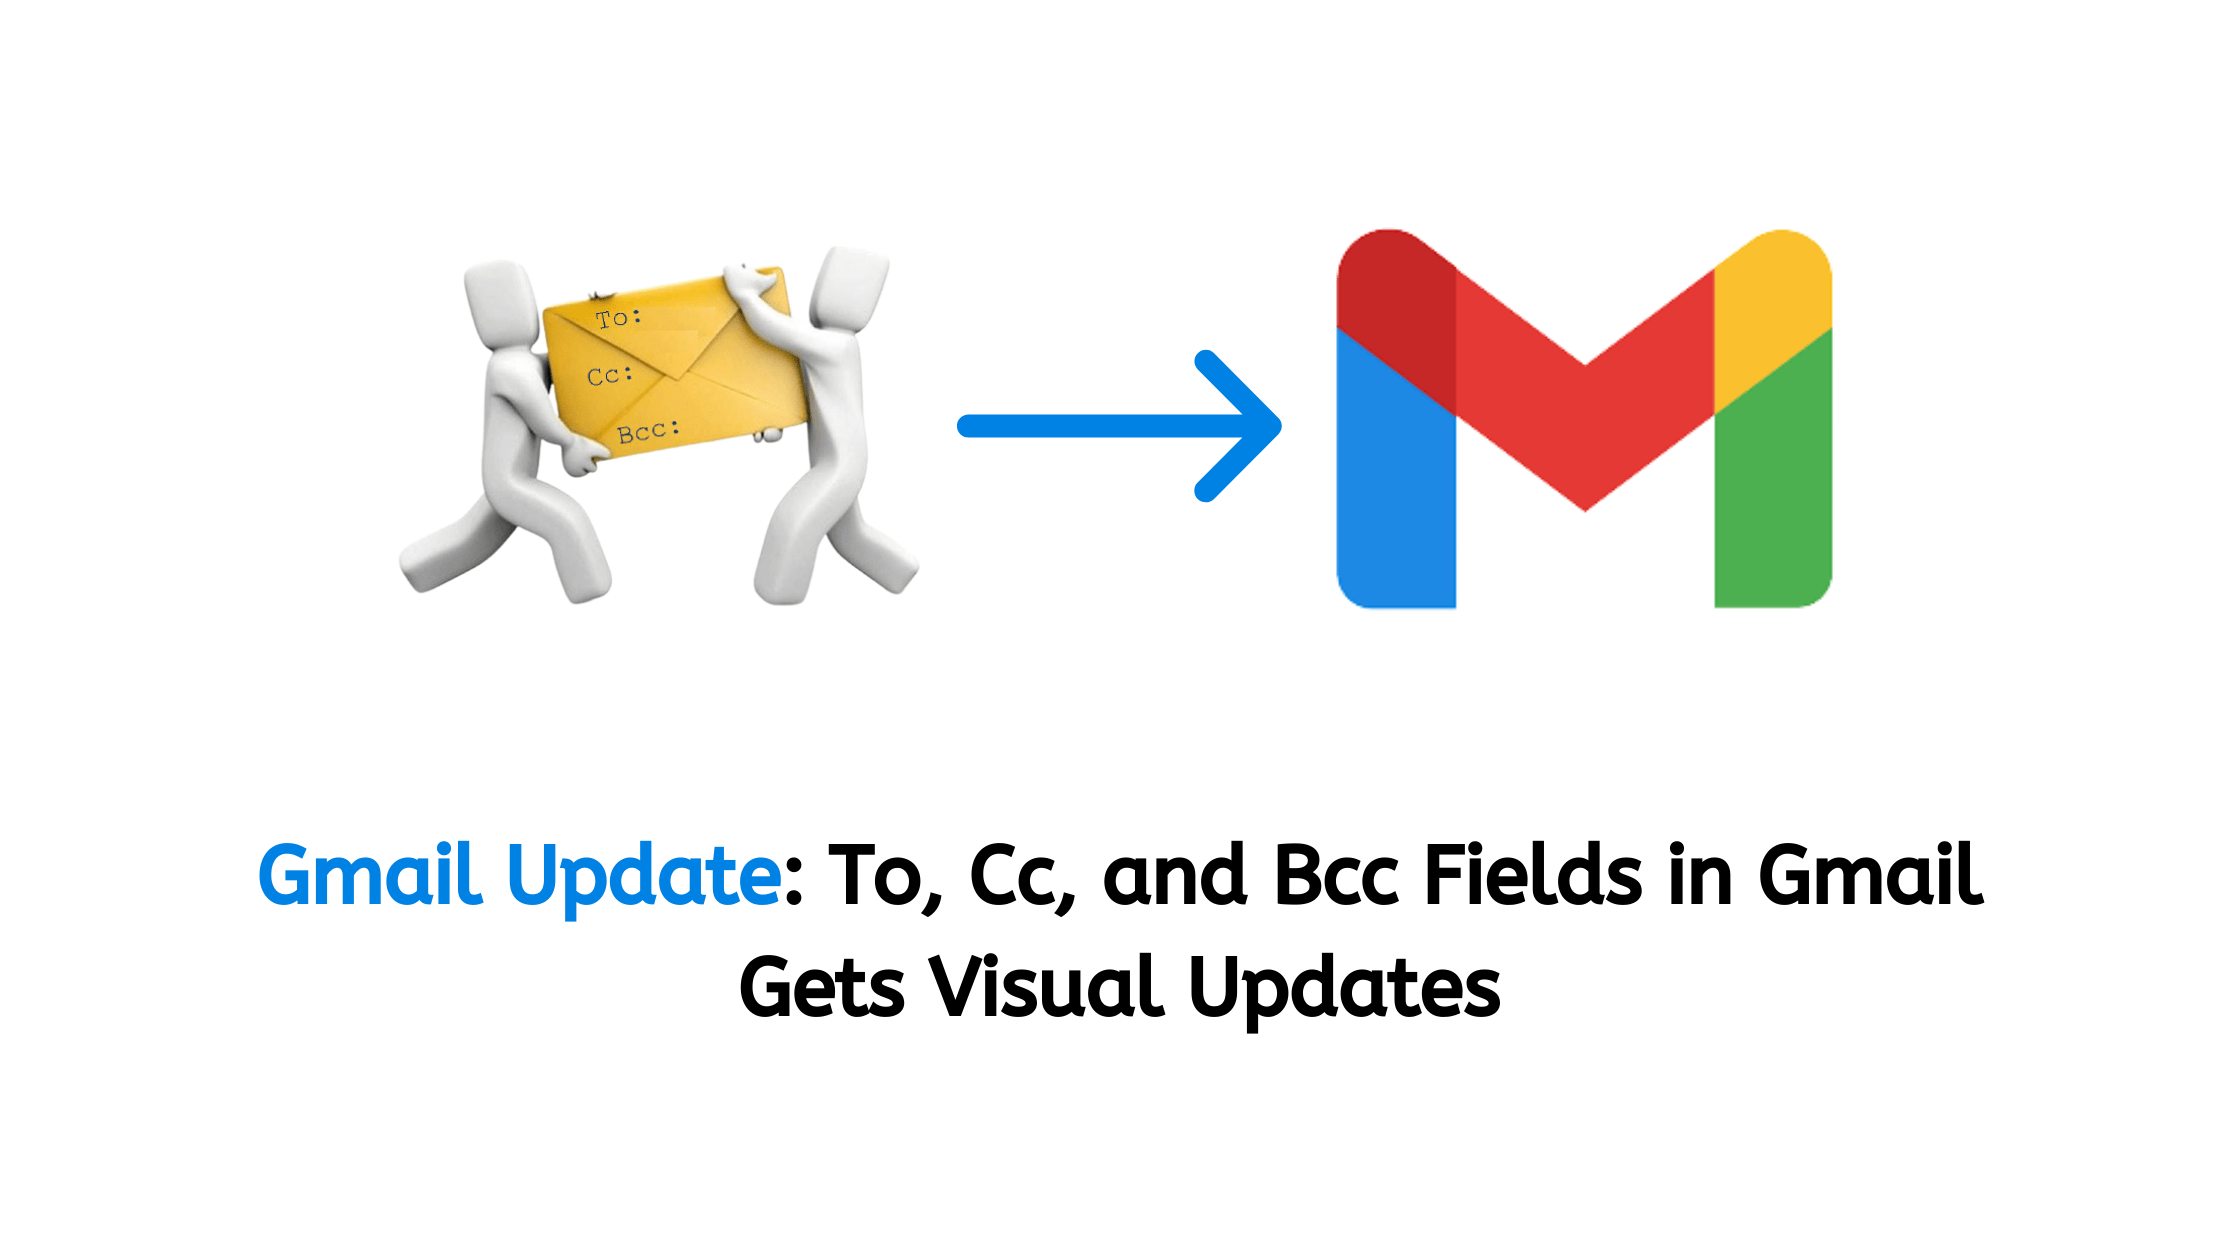 Gmail Update: To, Cc, and Bcc Fields in Gmail Gets Visual Updates